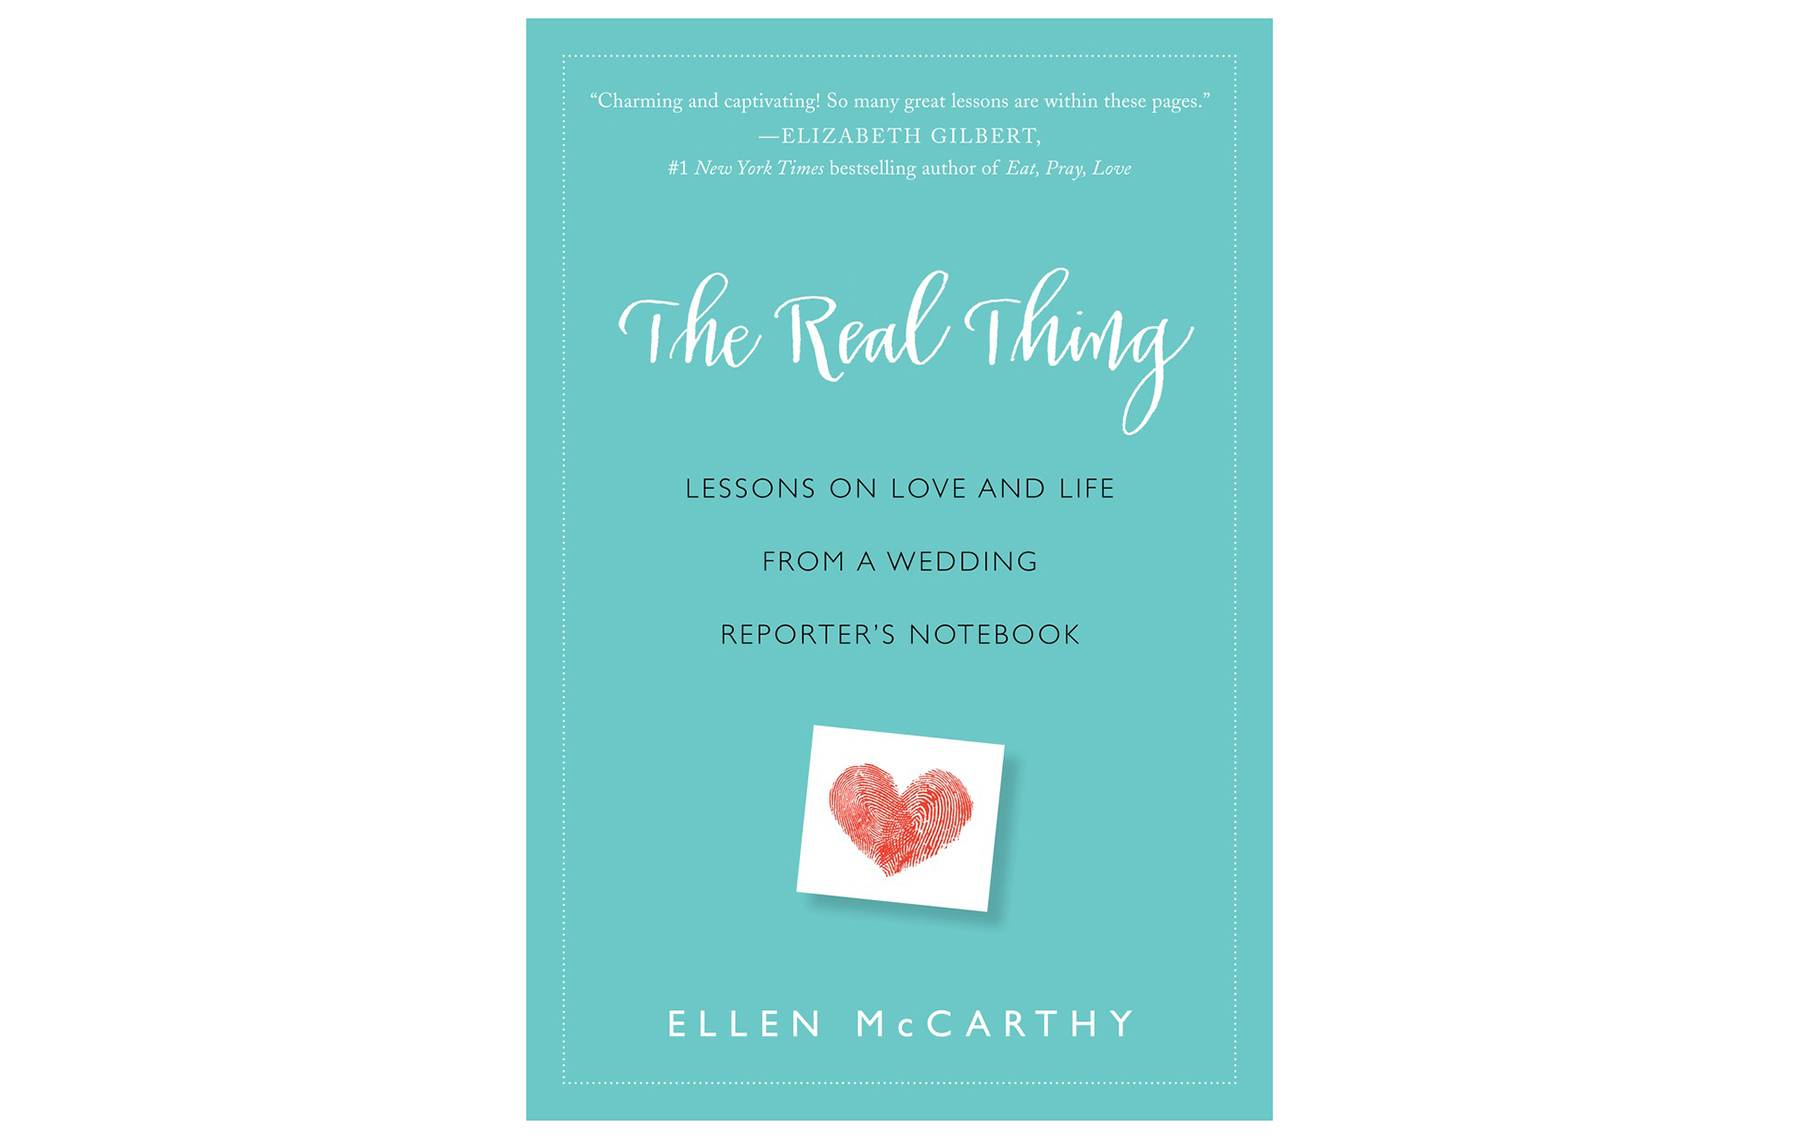 The Real Thing, by Ellen McCarthy